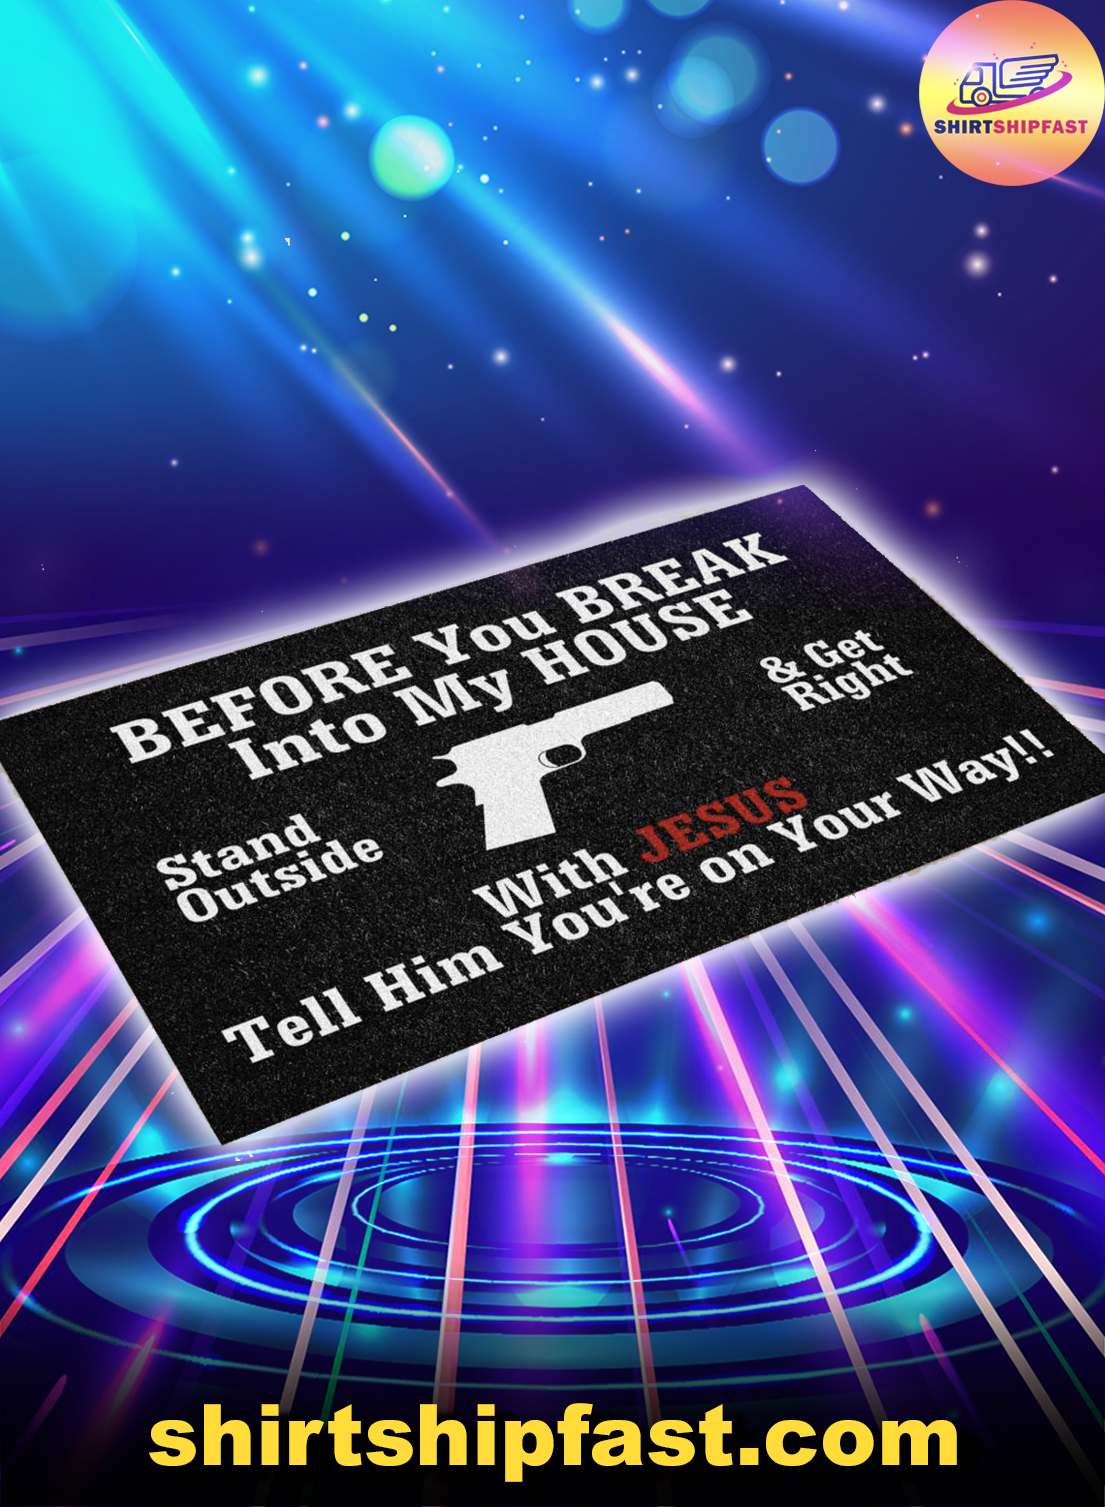 Gun Before you break into my house with Jesus tell him you're on your way doormat - Picture 1